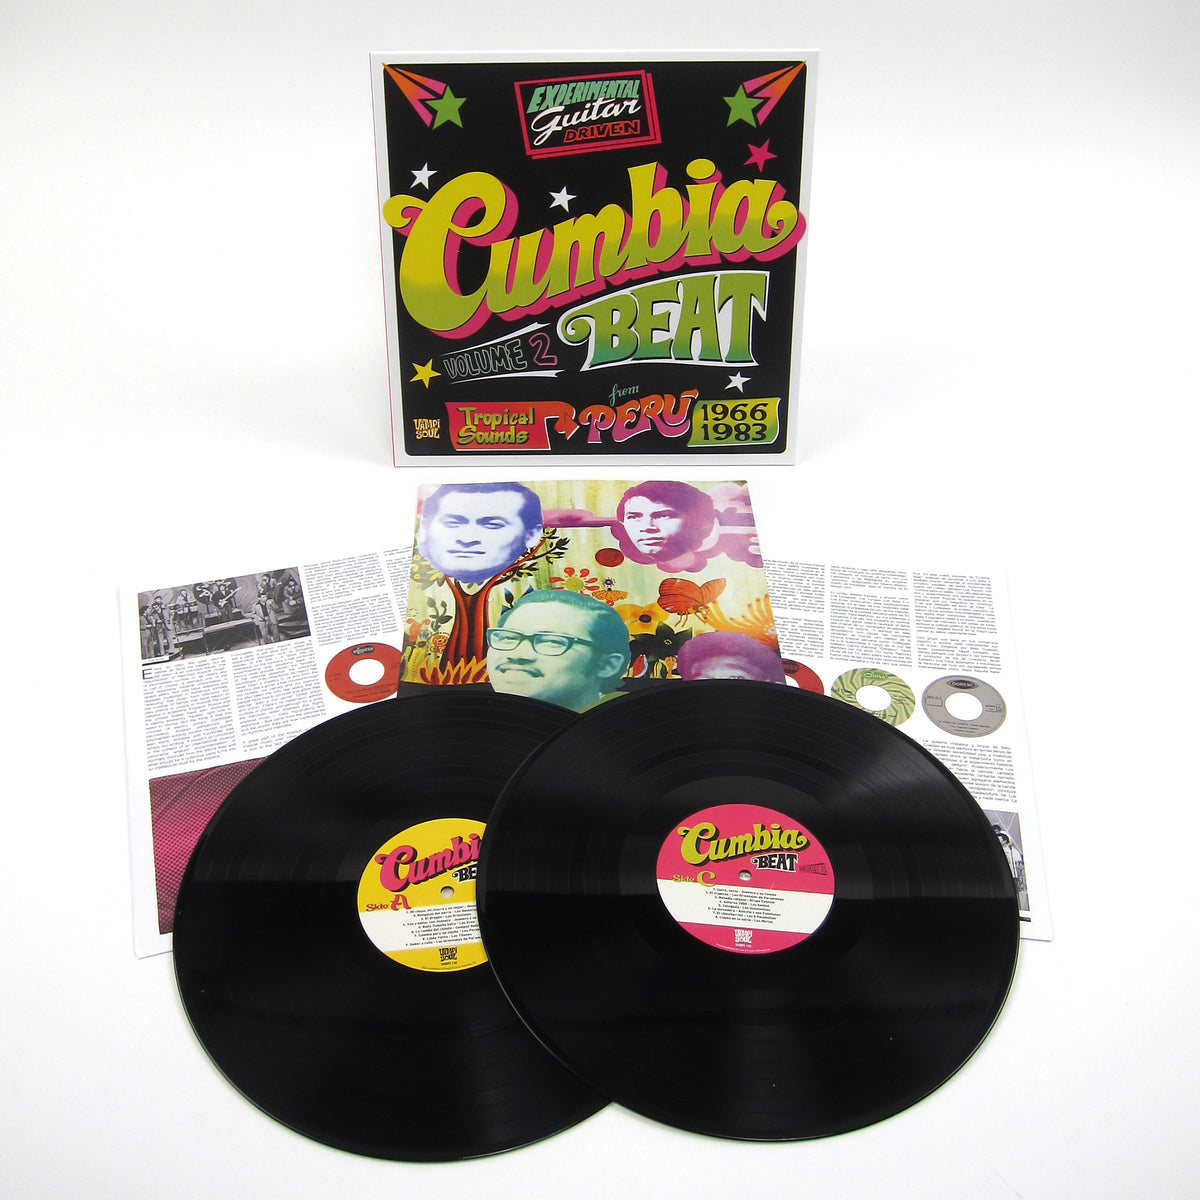 Vampi Soul: Cumbia Beat Vol.2 - Experimental Guitar-Driven Tropical Sounds From Peru 1966/1983 Vinyl 2LP